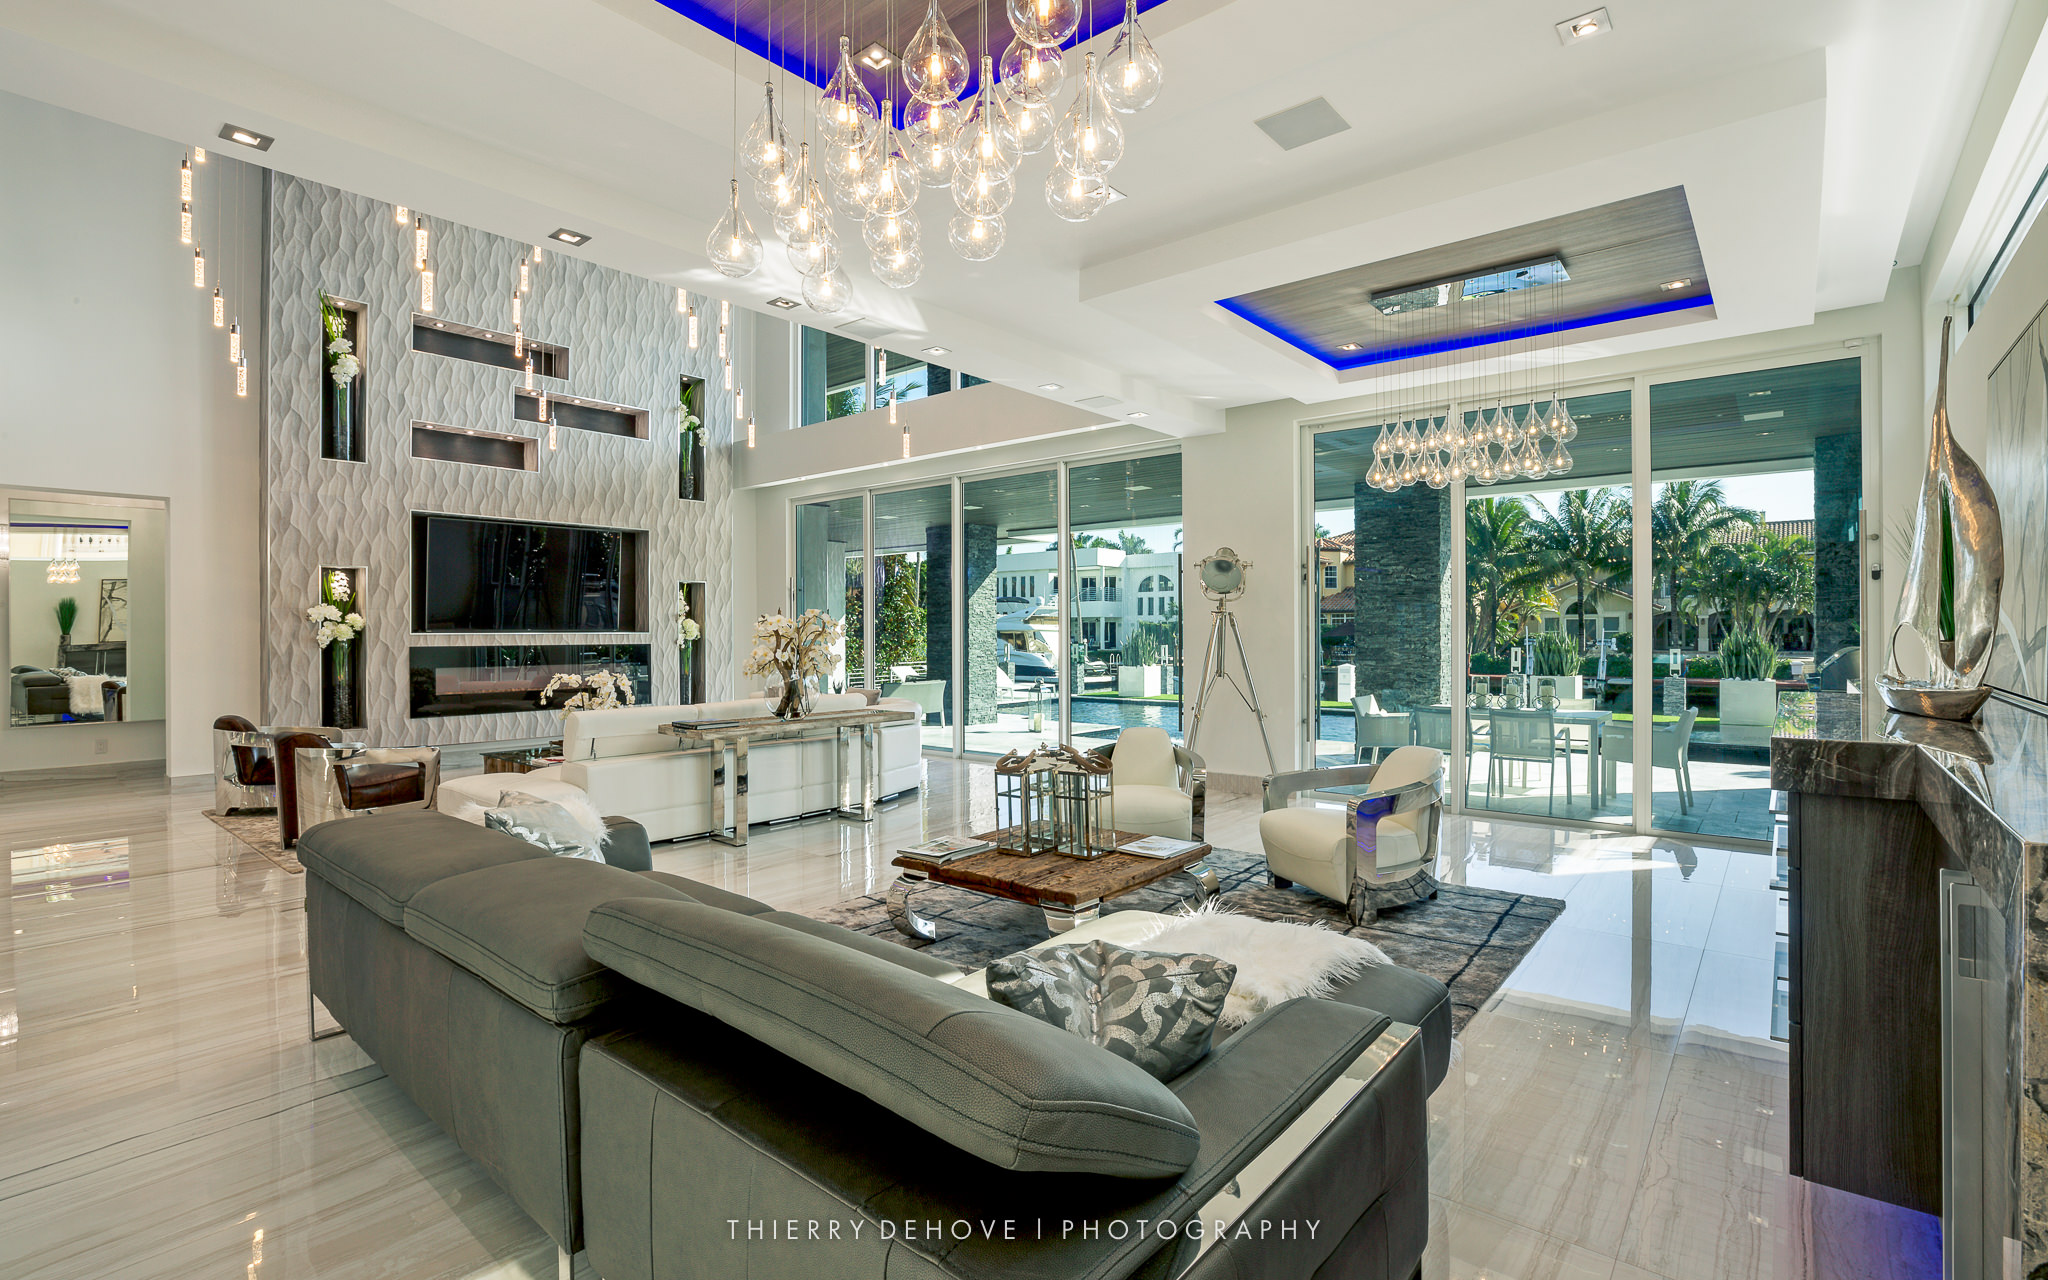 Luxury interior designs by prestige homes in fort lauderdale welcome to thierry dehove 39 s portfolio Interior design ideas luxury homes